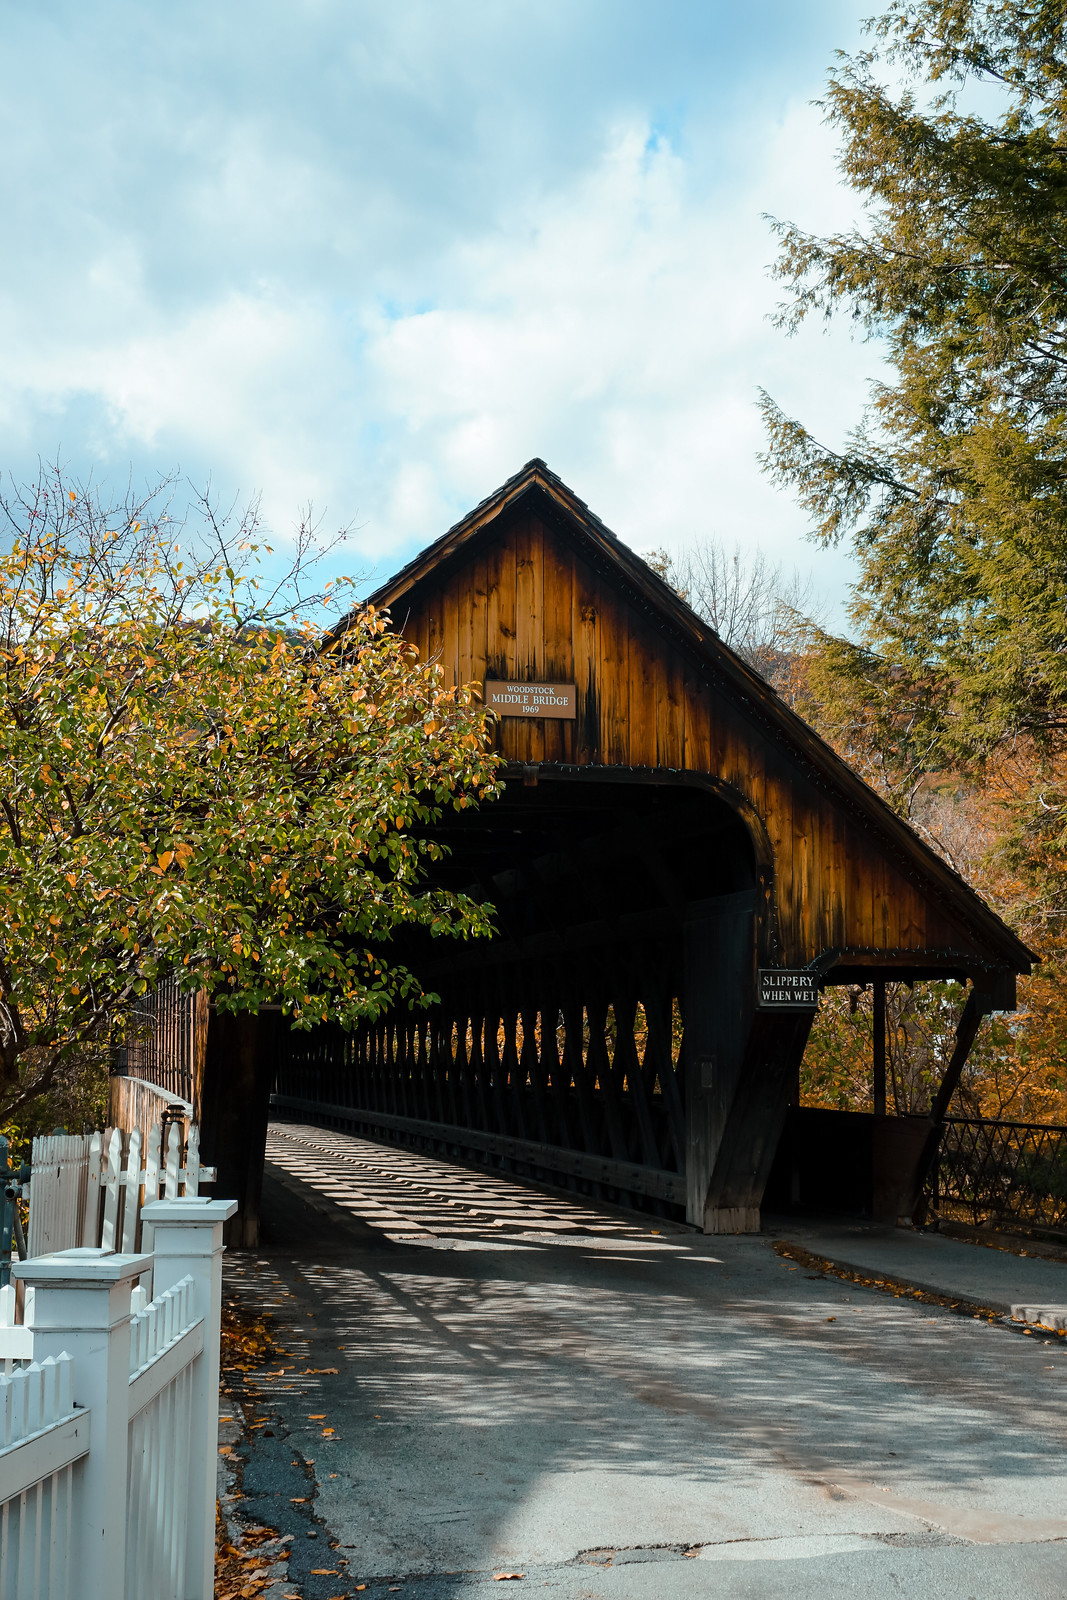 Middle Covered Bridge | Woodstock VT | My Complete Vermont Fall Travel Guide: What to See, Do & Eat | Ultimate Fall Guide to Vermont | 5 Day Vermont Road Trip | Fall Foliage Road Trip Guide